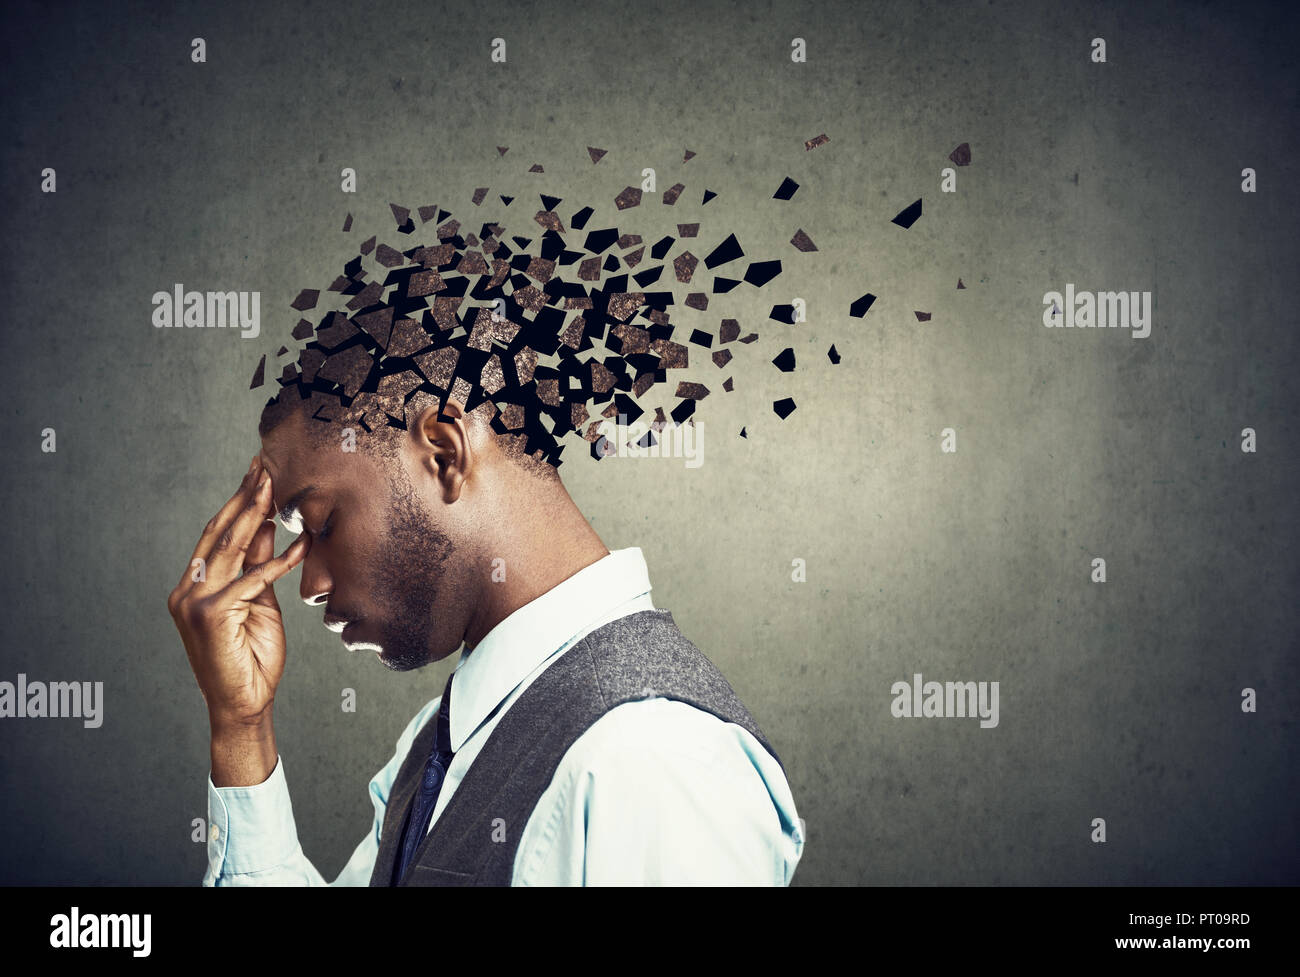 Memory loss due to dementia or brain damage. Side profile of a sad man losing parts of head as symbol of decreased mind function. - Stock Image